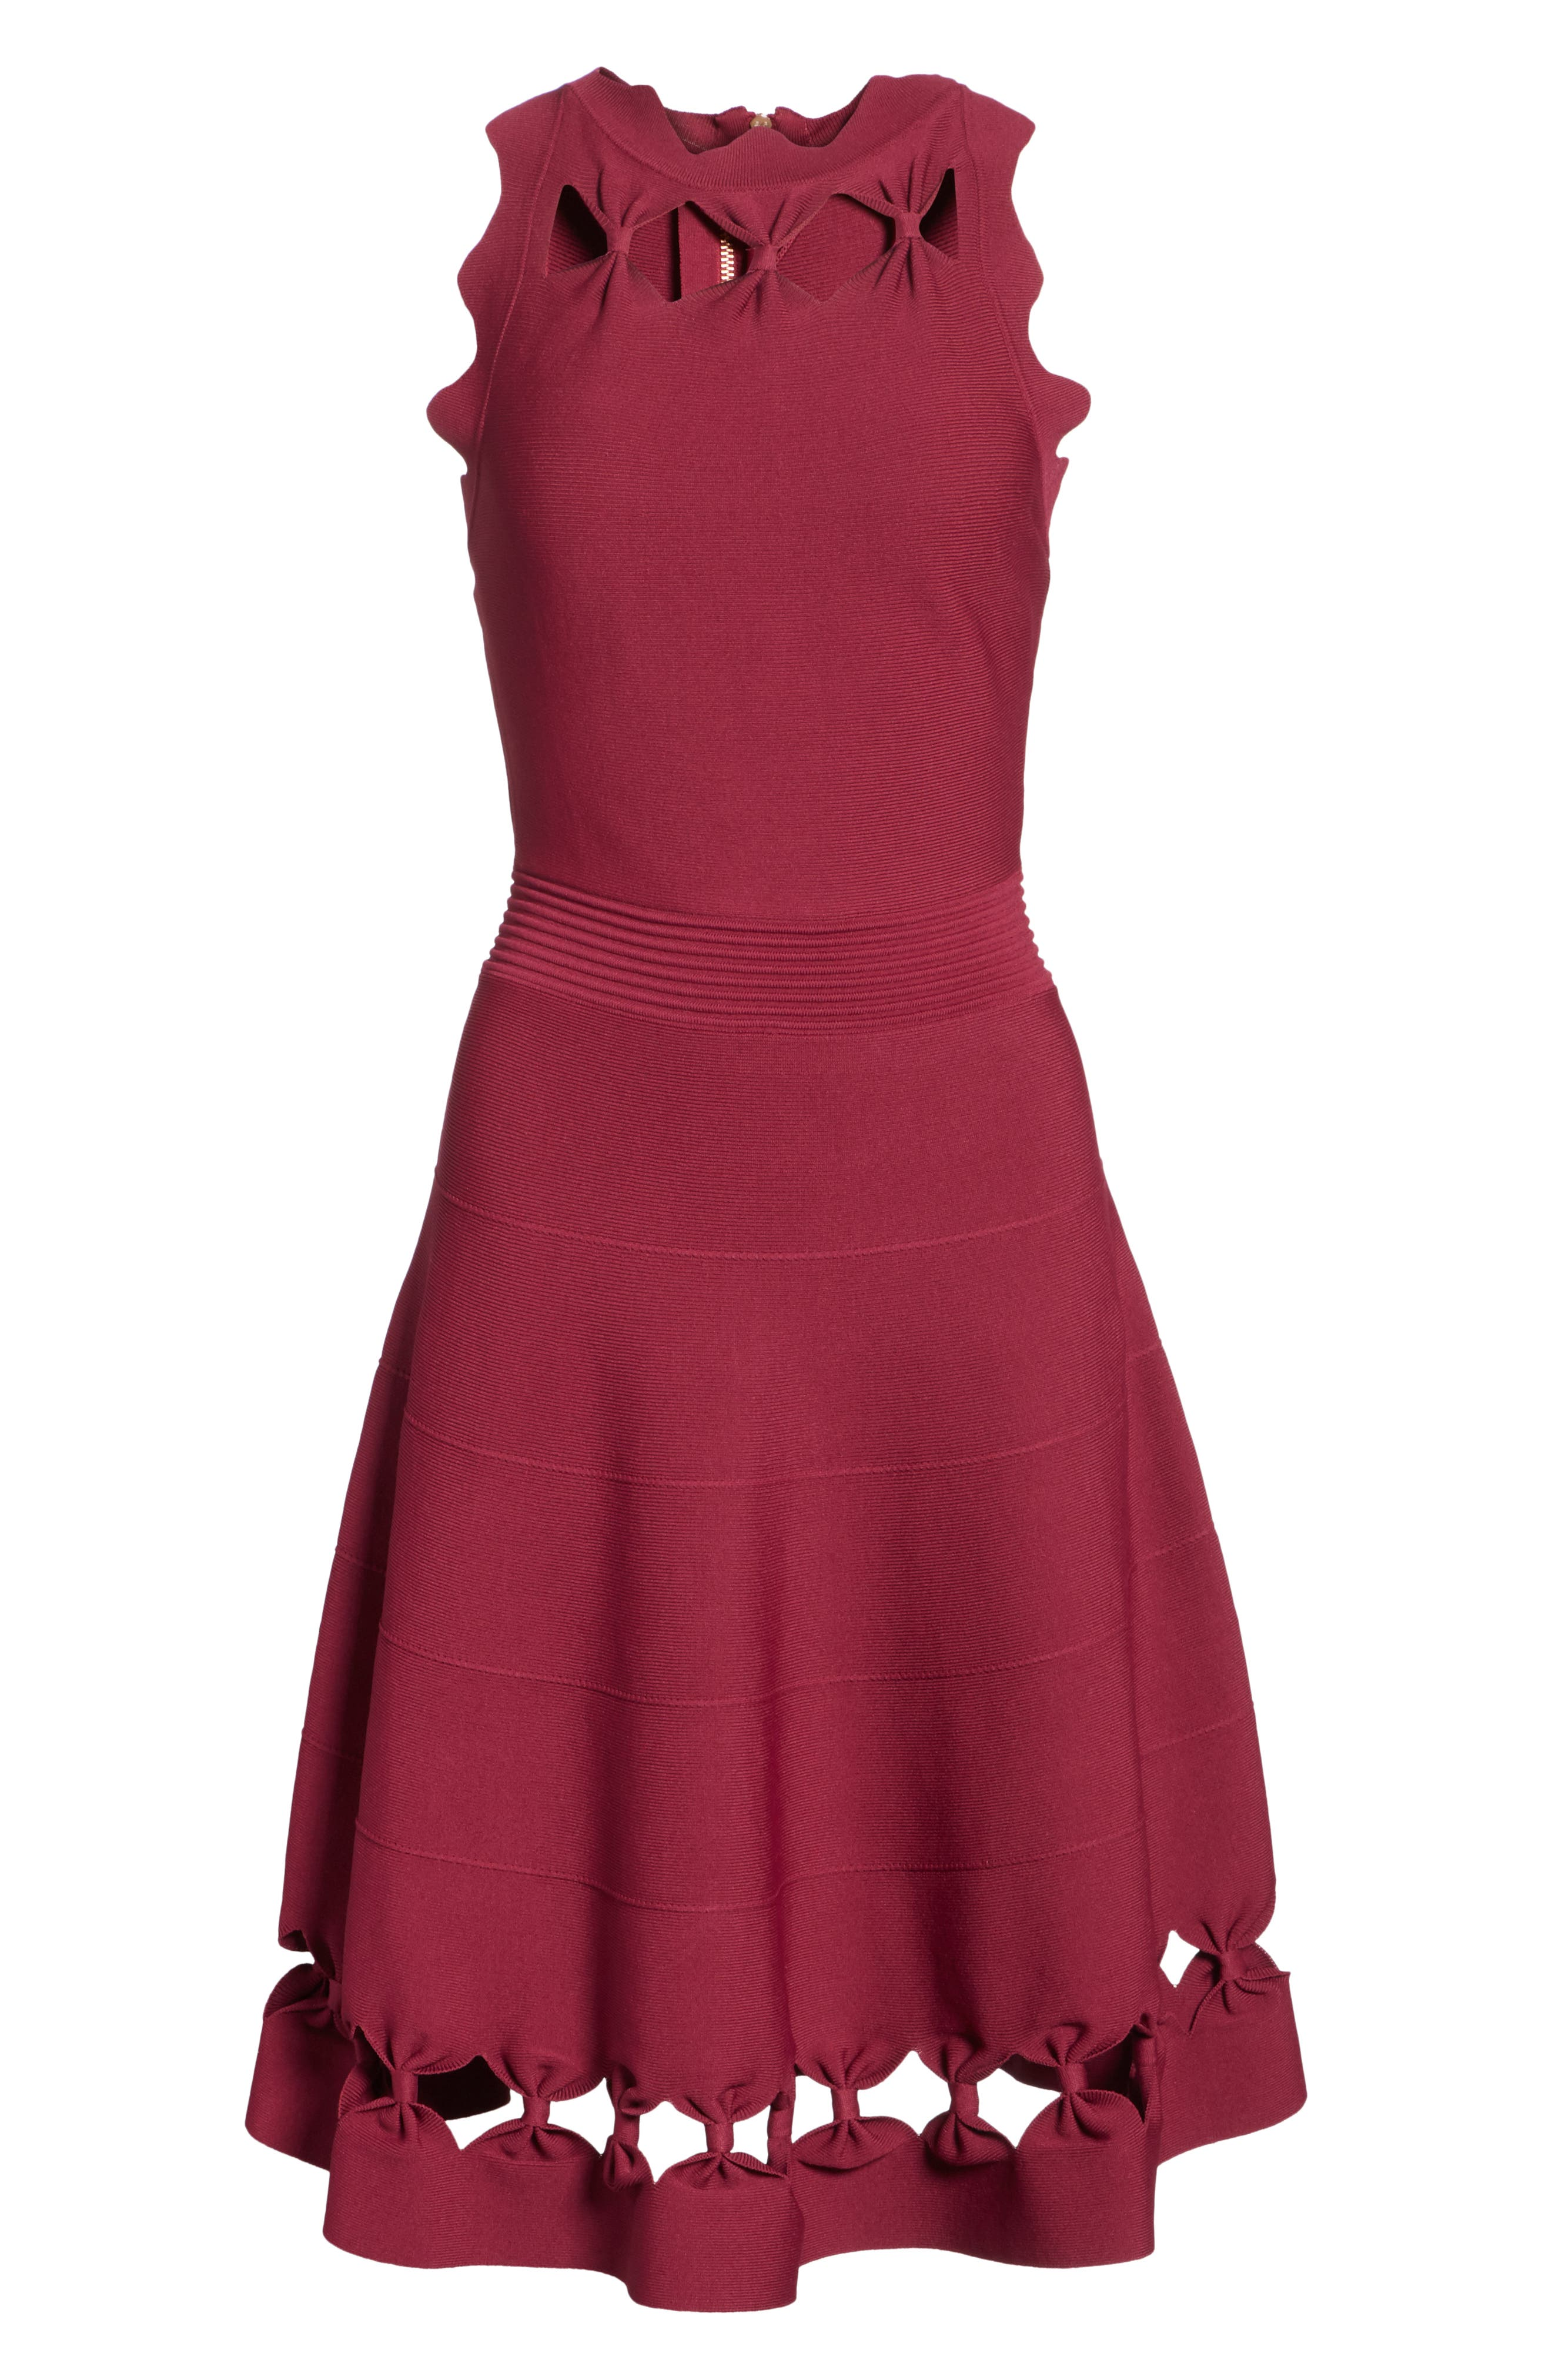 Cherina Bow Detail Fit & Flare Knit Dress,                             Alternate thumbnail 6, color,                             930